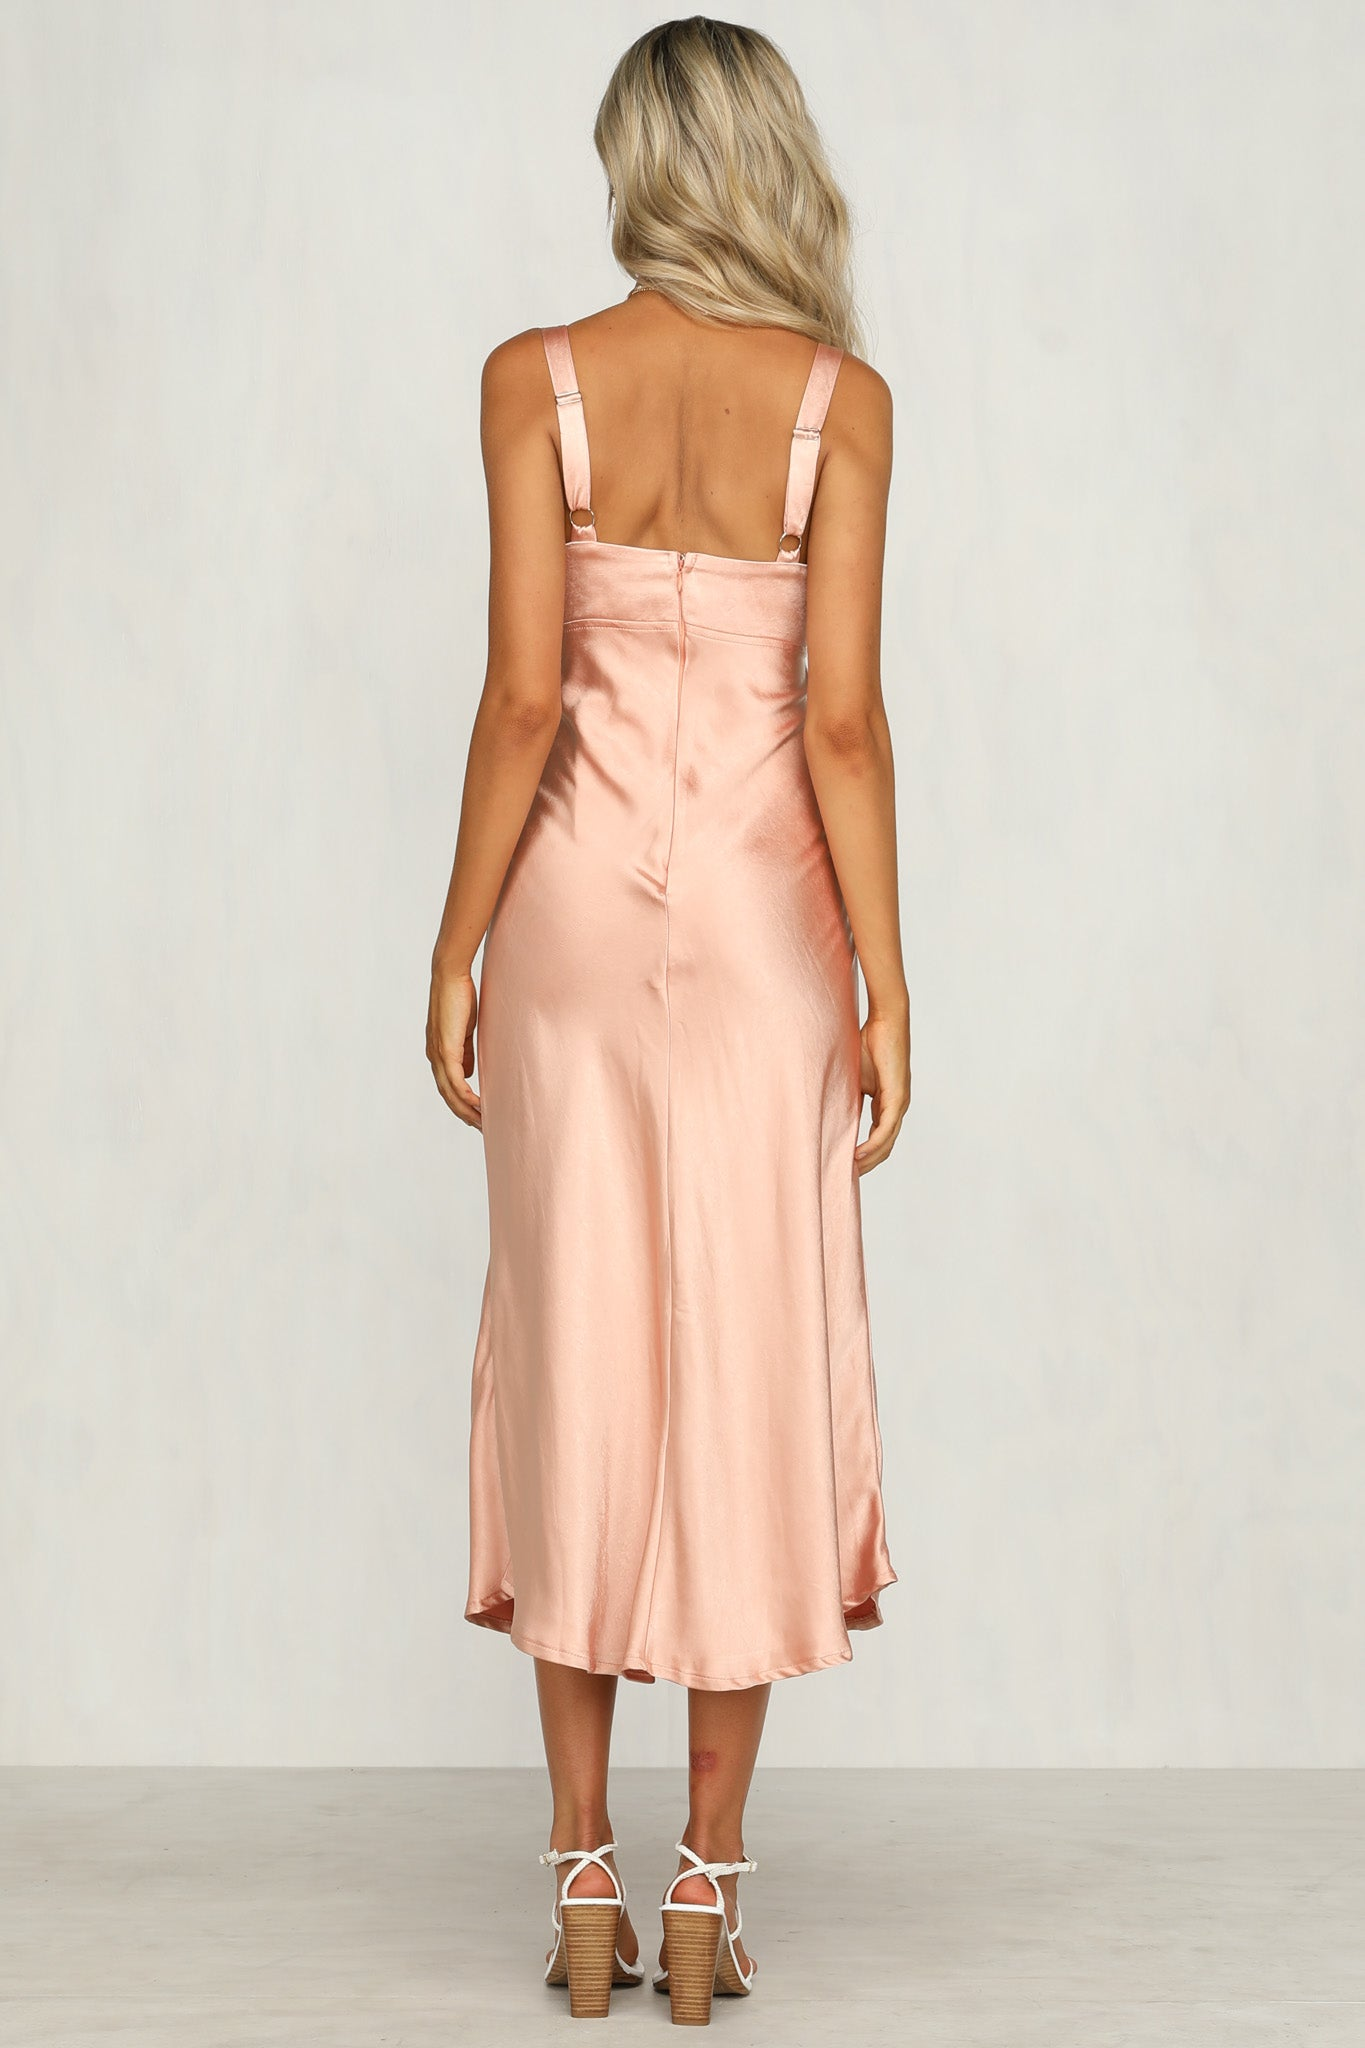 Vaucluse Dress (Peach)